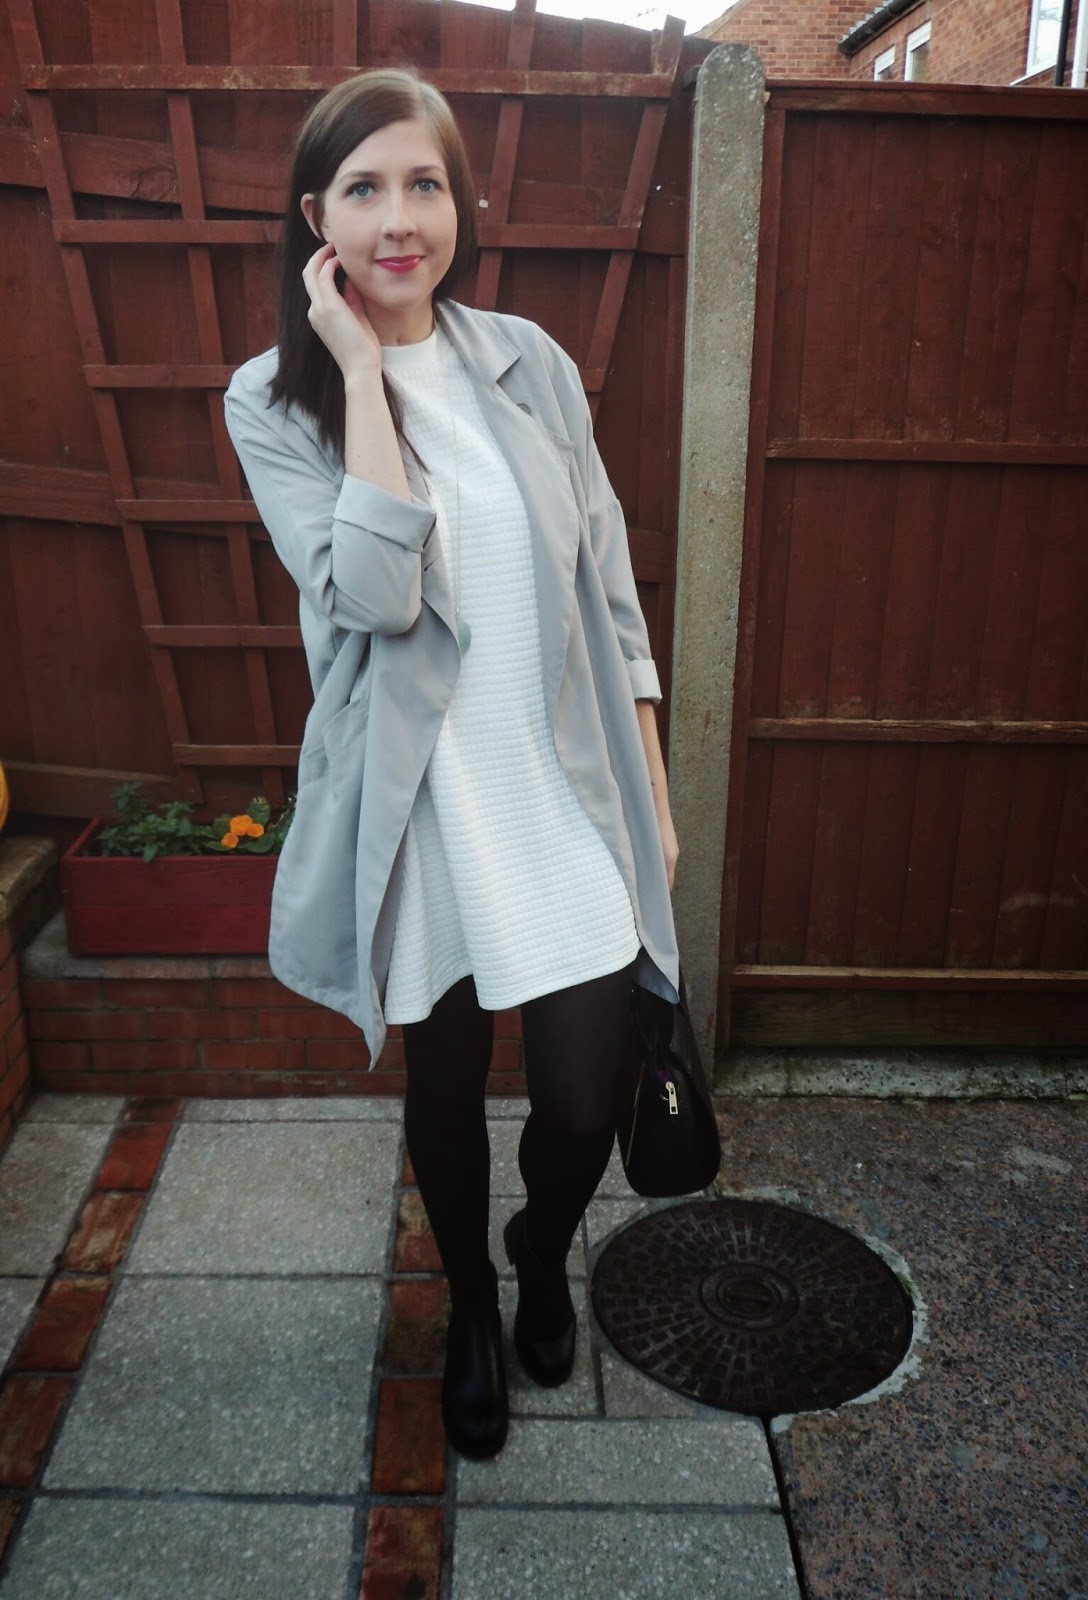 asseenonme, autumn/winter, black, fashionbloggers, fblogger, fbloggers, grayscale, grey, lookoftheday, lotd, ootd, outfitoftheday, primark, topshop, whatimwearing, white, winter, winterfashion, wiw,